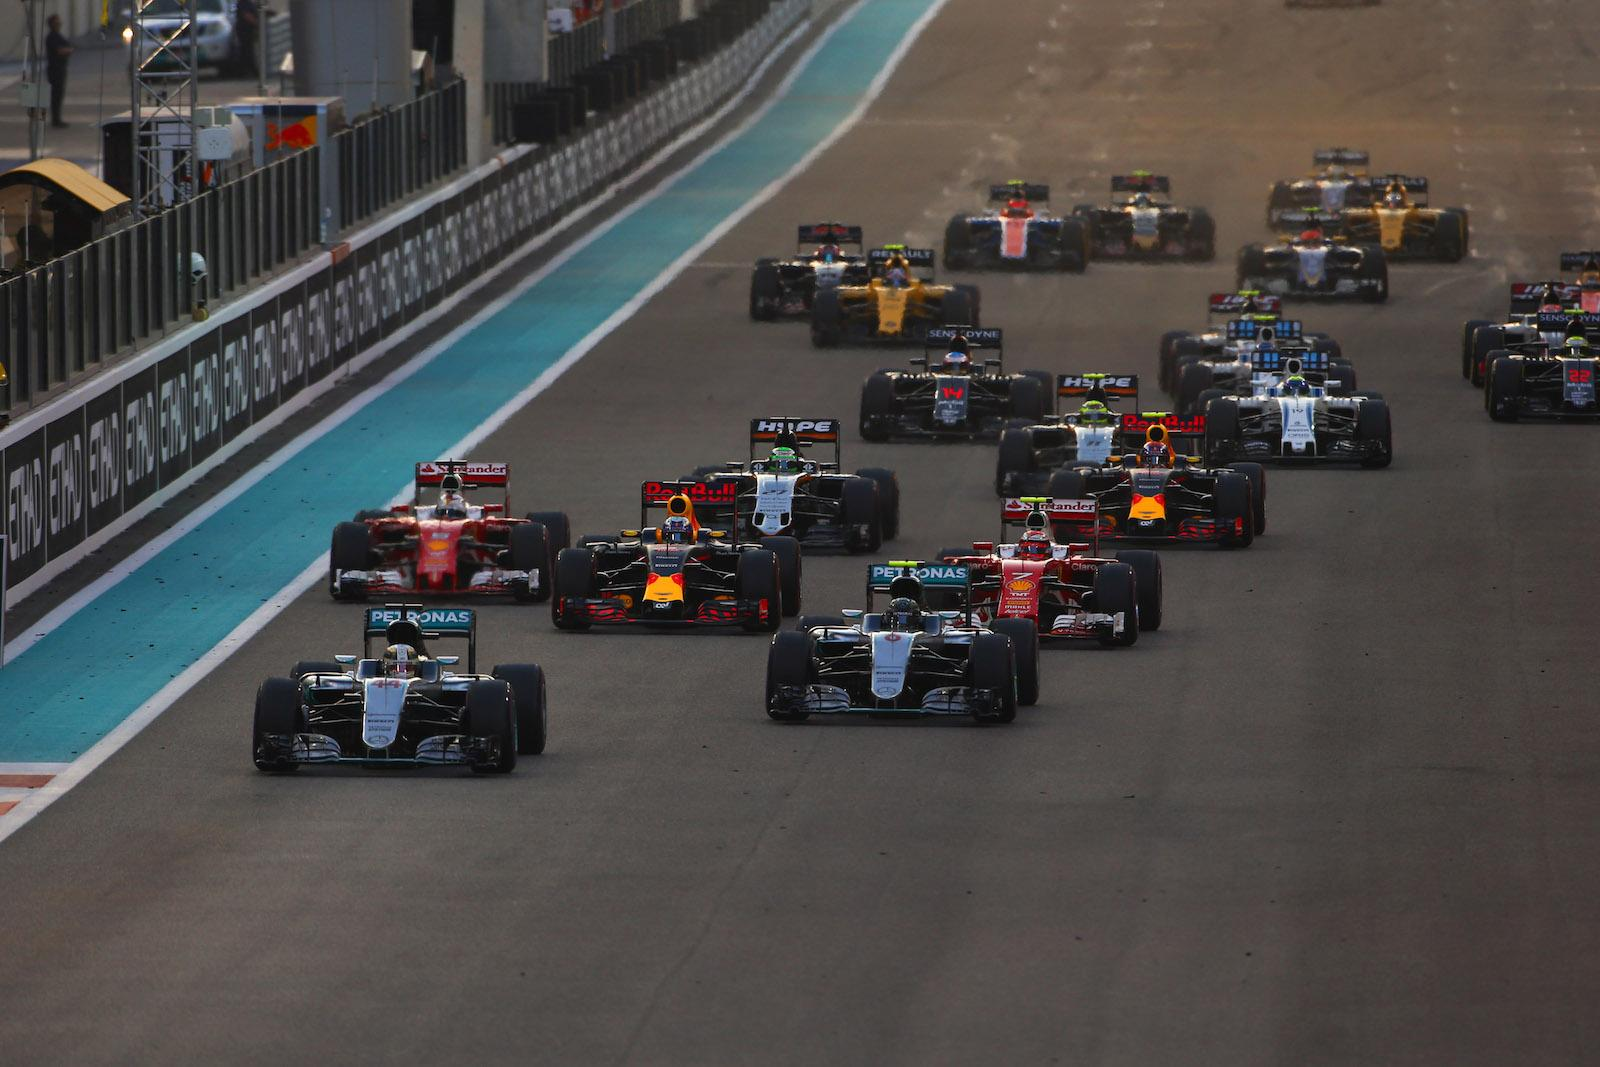 Promoted: Abu Dhabi Grand Prix preview with F1 Experiences